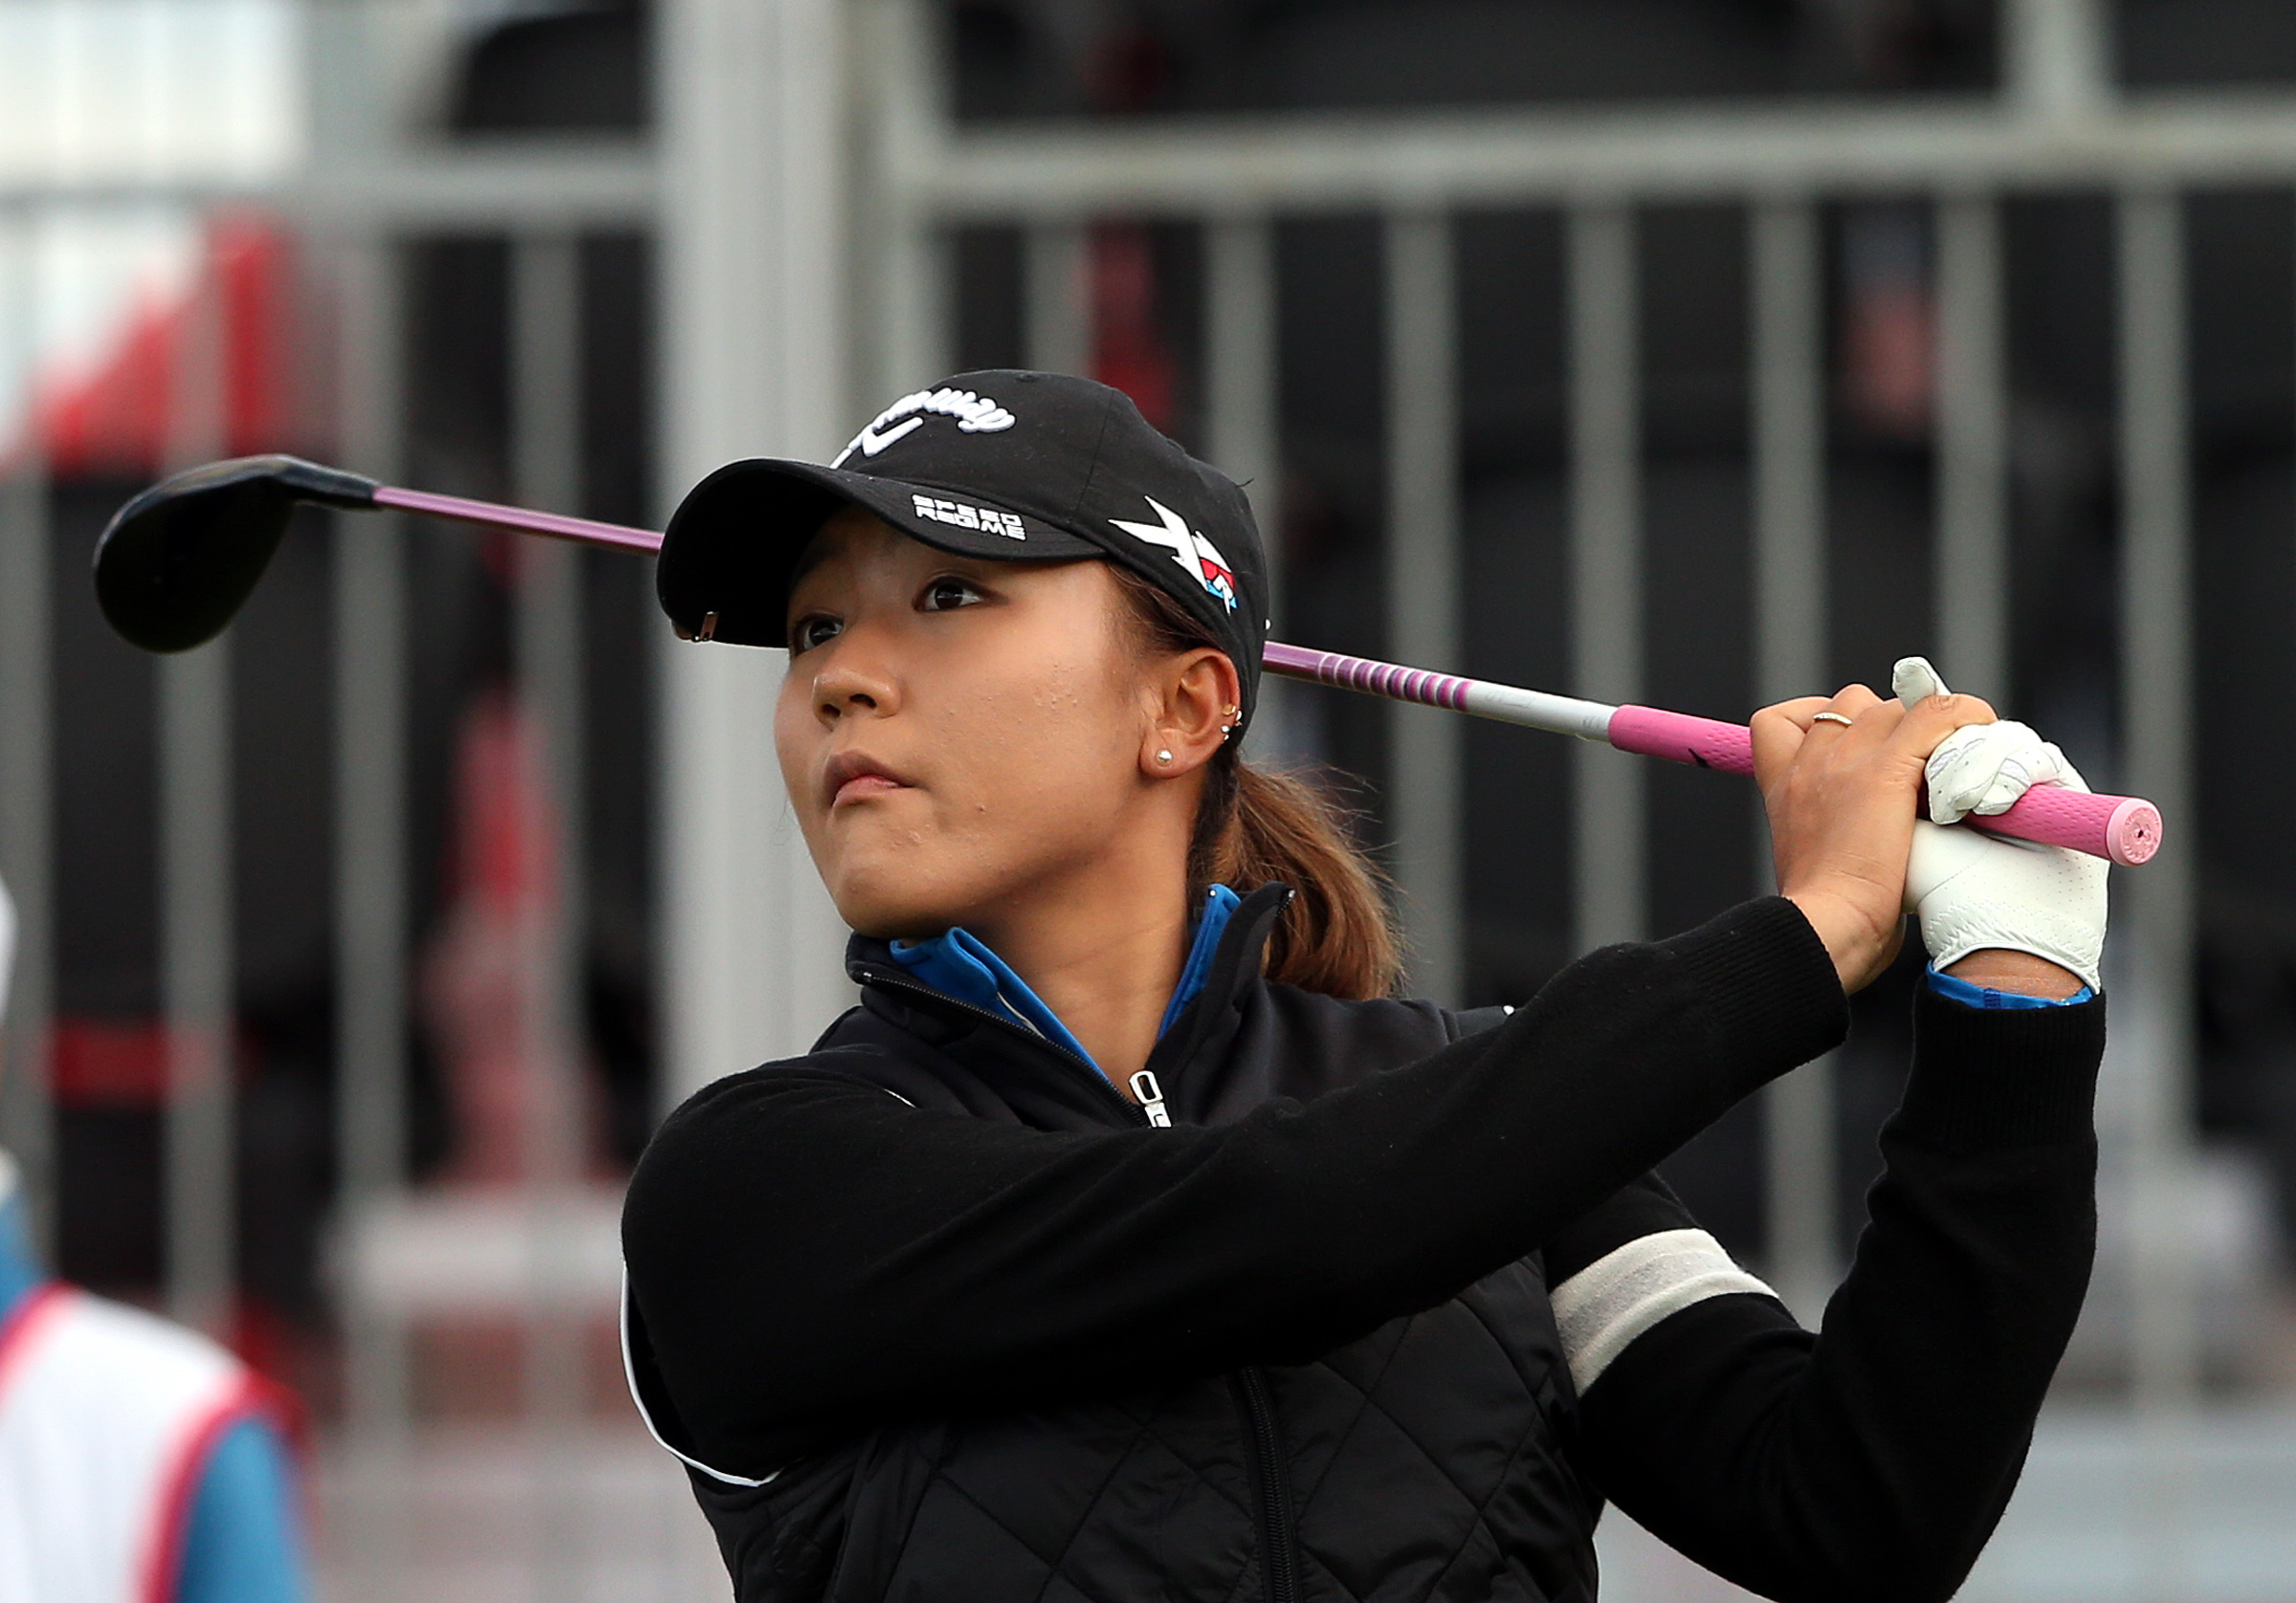 Lydia Ko of New Zealand tees off from the first hole during the first day of the Women's British Open golf championship on the Turnberry golf course in Turnberry, Scotland, Thursday, July 30, 2015. (AP Photo/Scott Heppell)